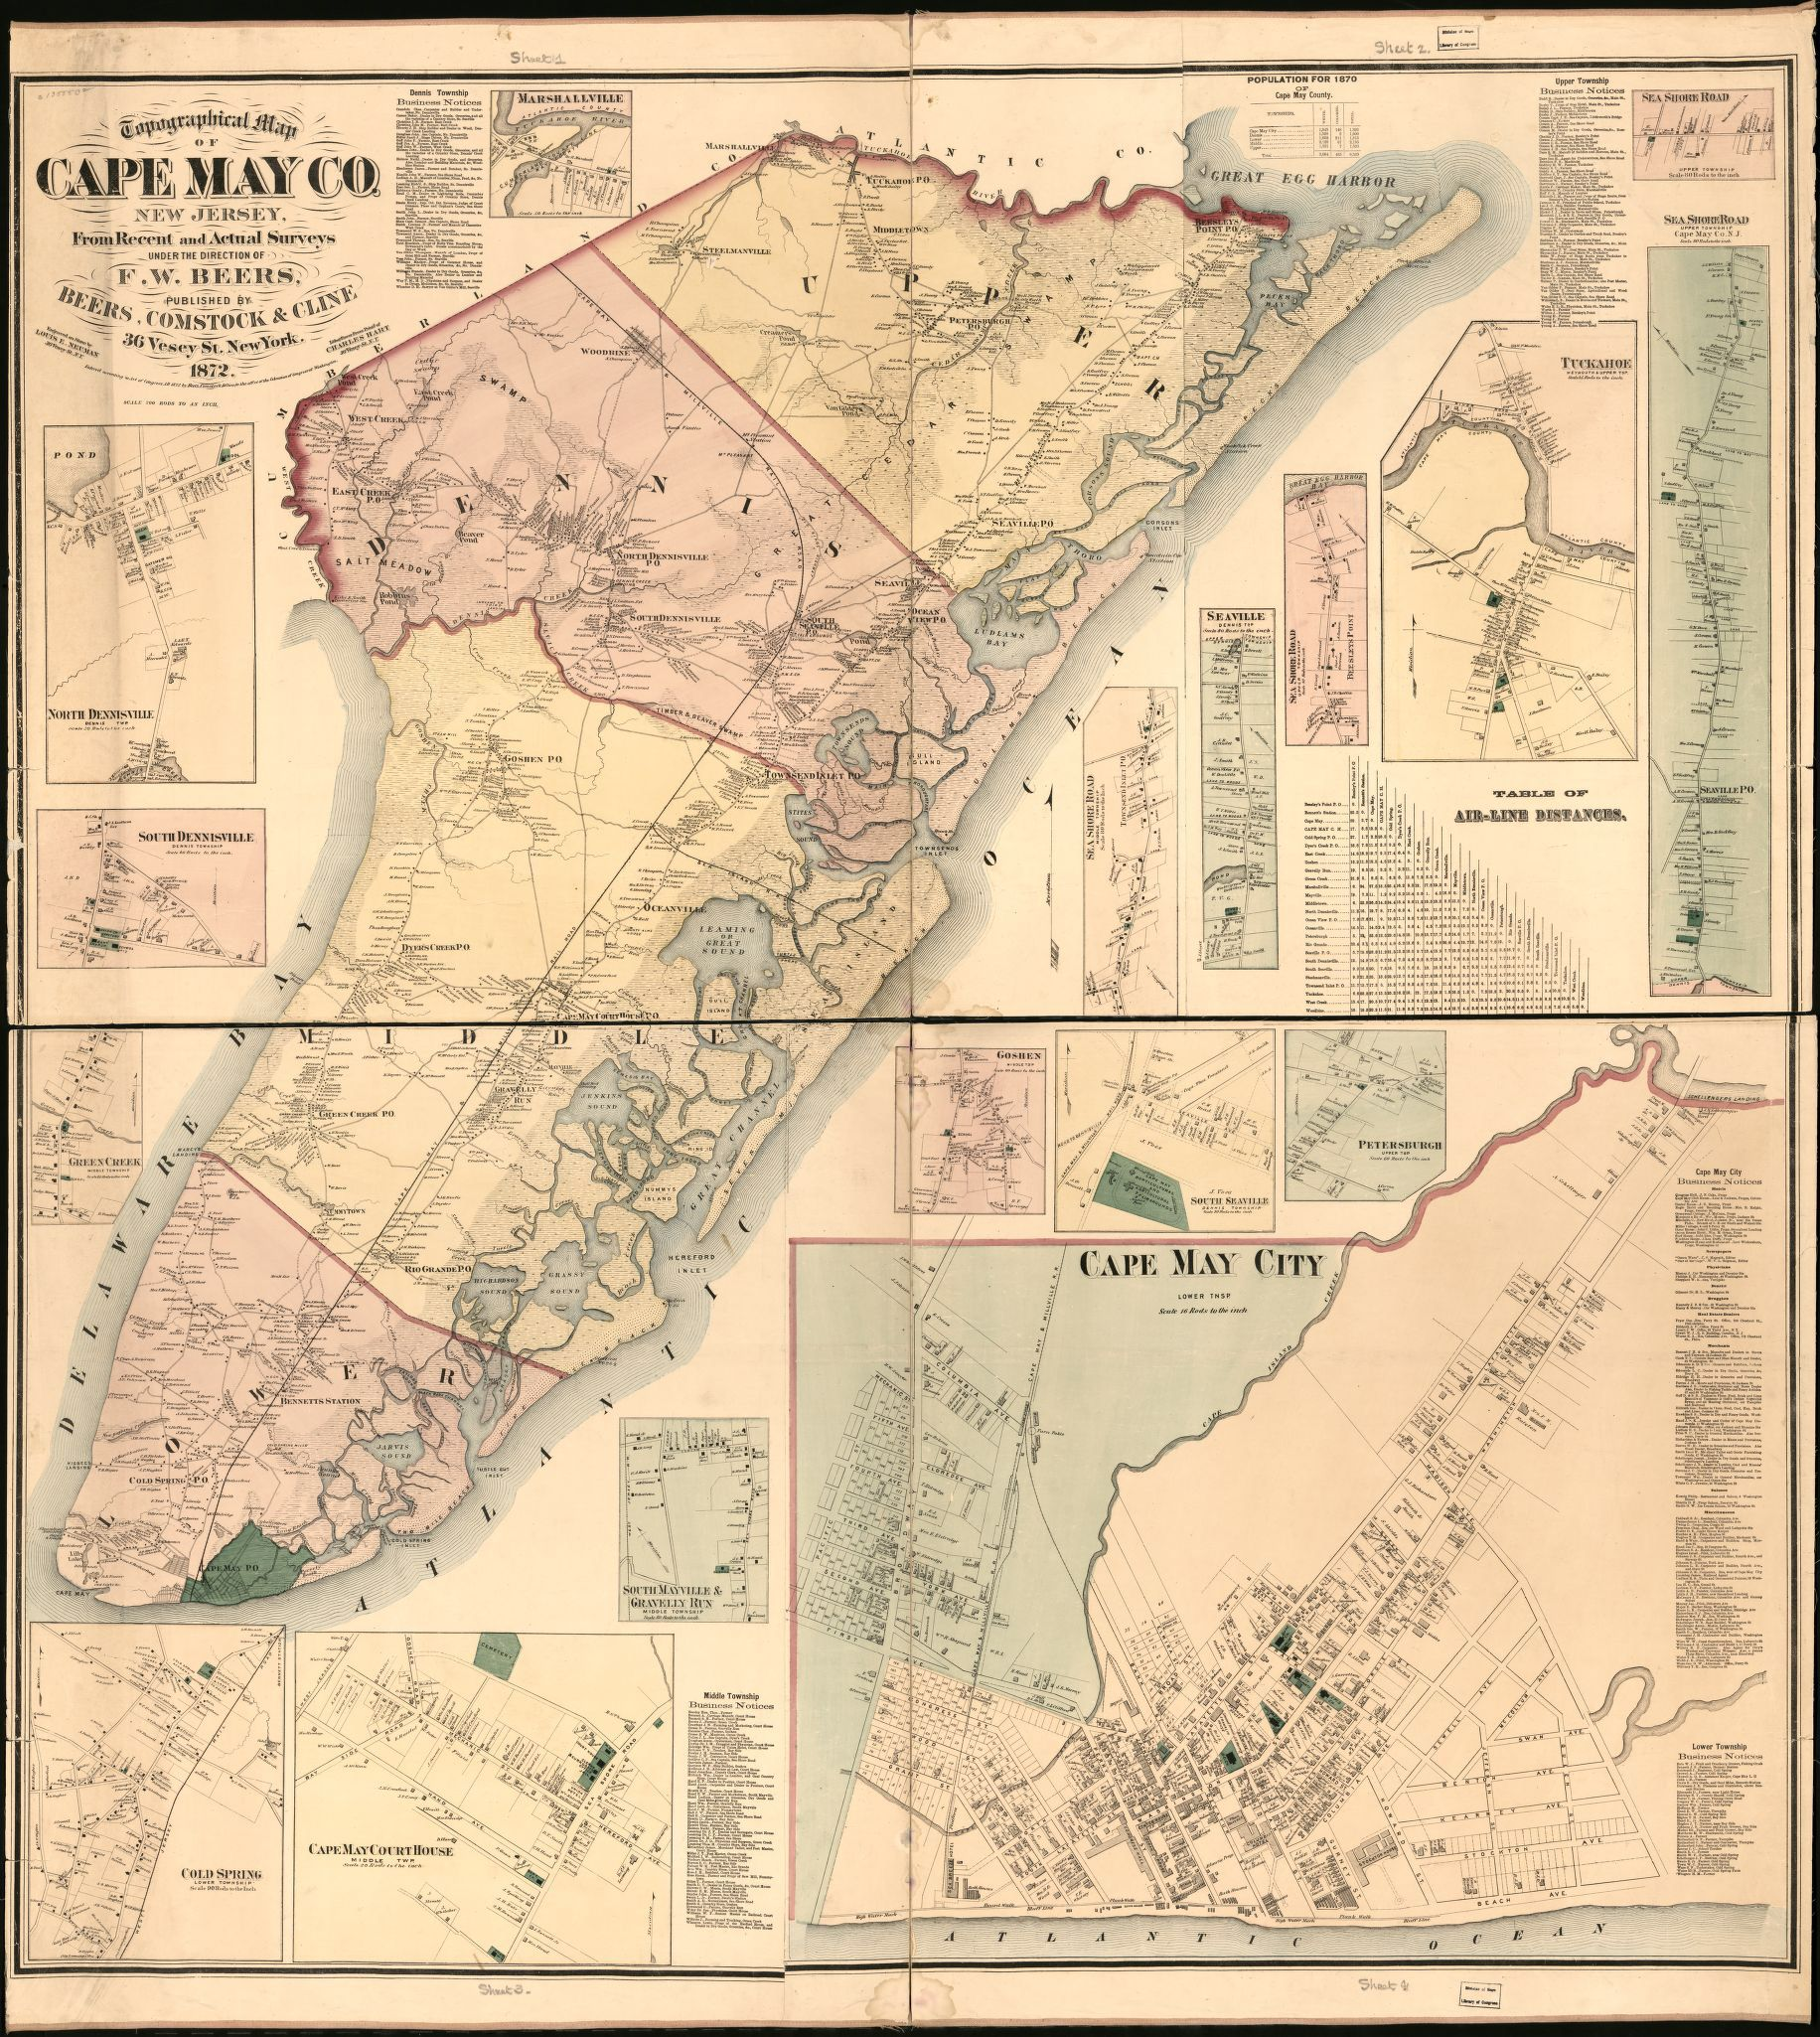 Image From Http Tile Loc Gov Image Services Jp2 Py Data Service Gmd Gmd381 G3813 G3813c La000444 Jp2 Res 3 Cape May Wall Maps Map